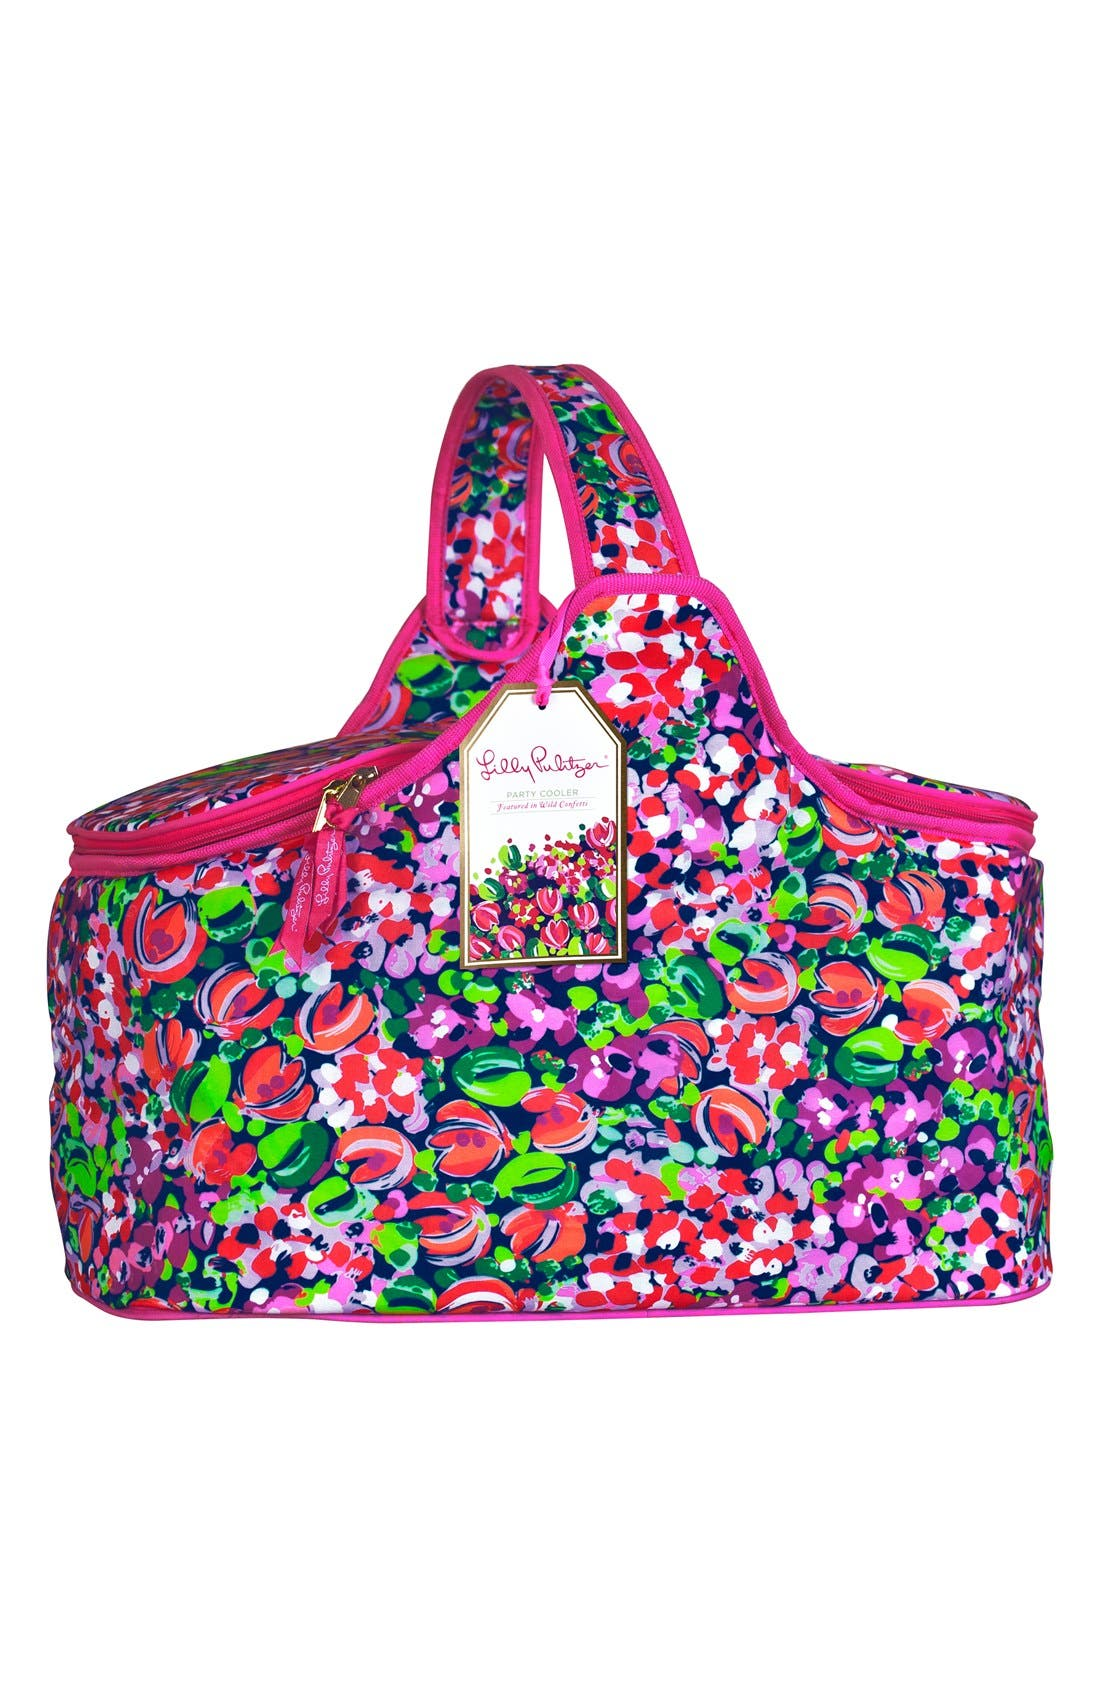 Alternate Image 1 Selected - Lilly Pulitzer® Insulated Party Cooler